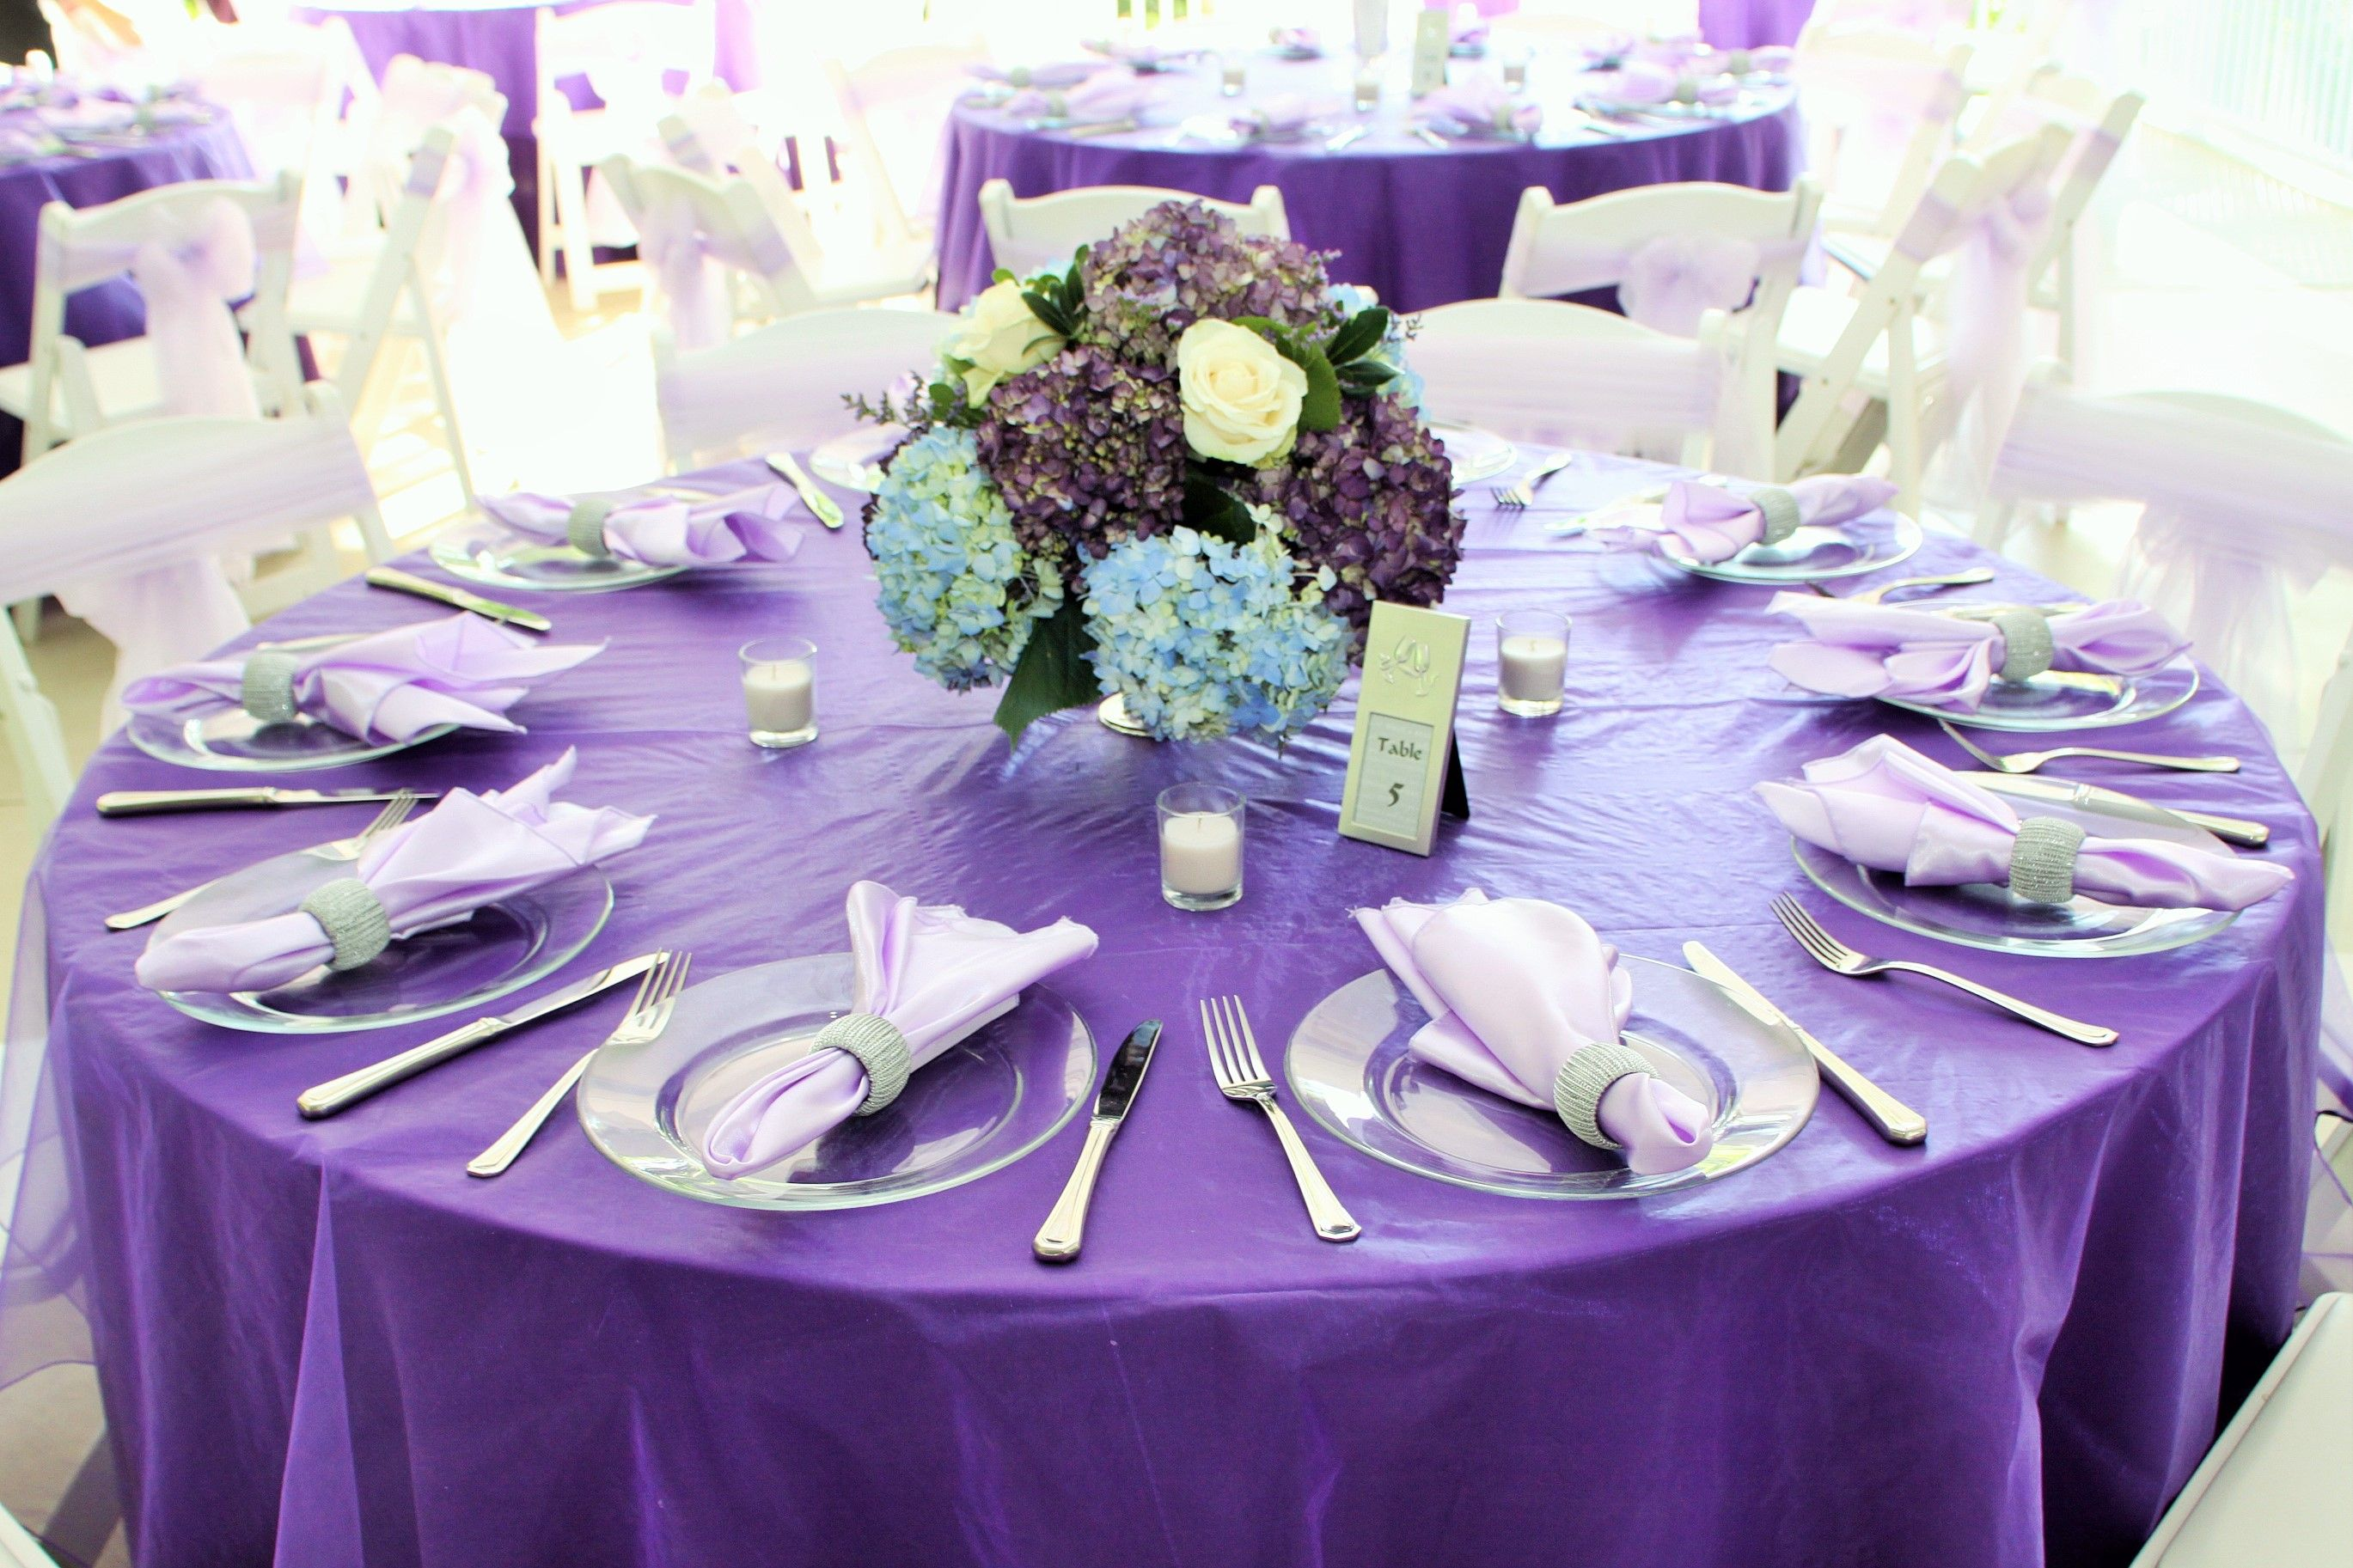 Wedding Decor  Lilac Linen and Light Blue and Purple Hydrangea Centerpiece  with White RosesWedding Decor  Lilac Linen and Light Blue and Purple Hydrangea  . Purple Tablecloths For Wedding. Home Design Ideas